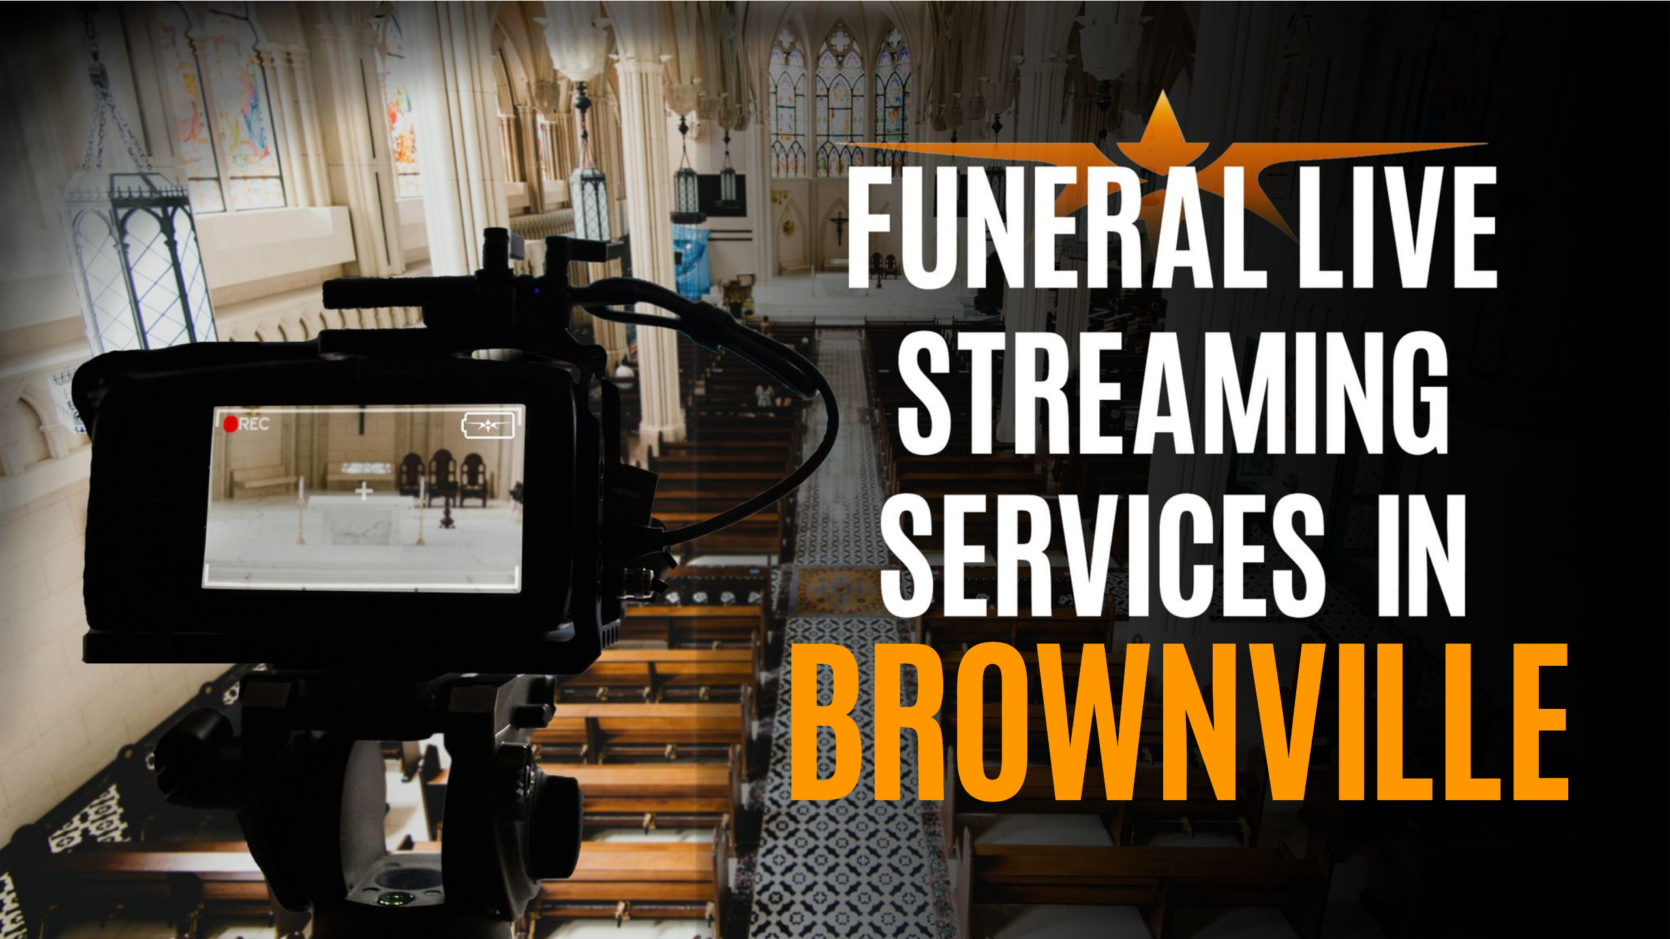 Funeral Live Streaming Services in Brownsville